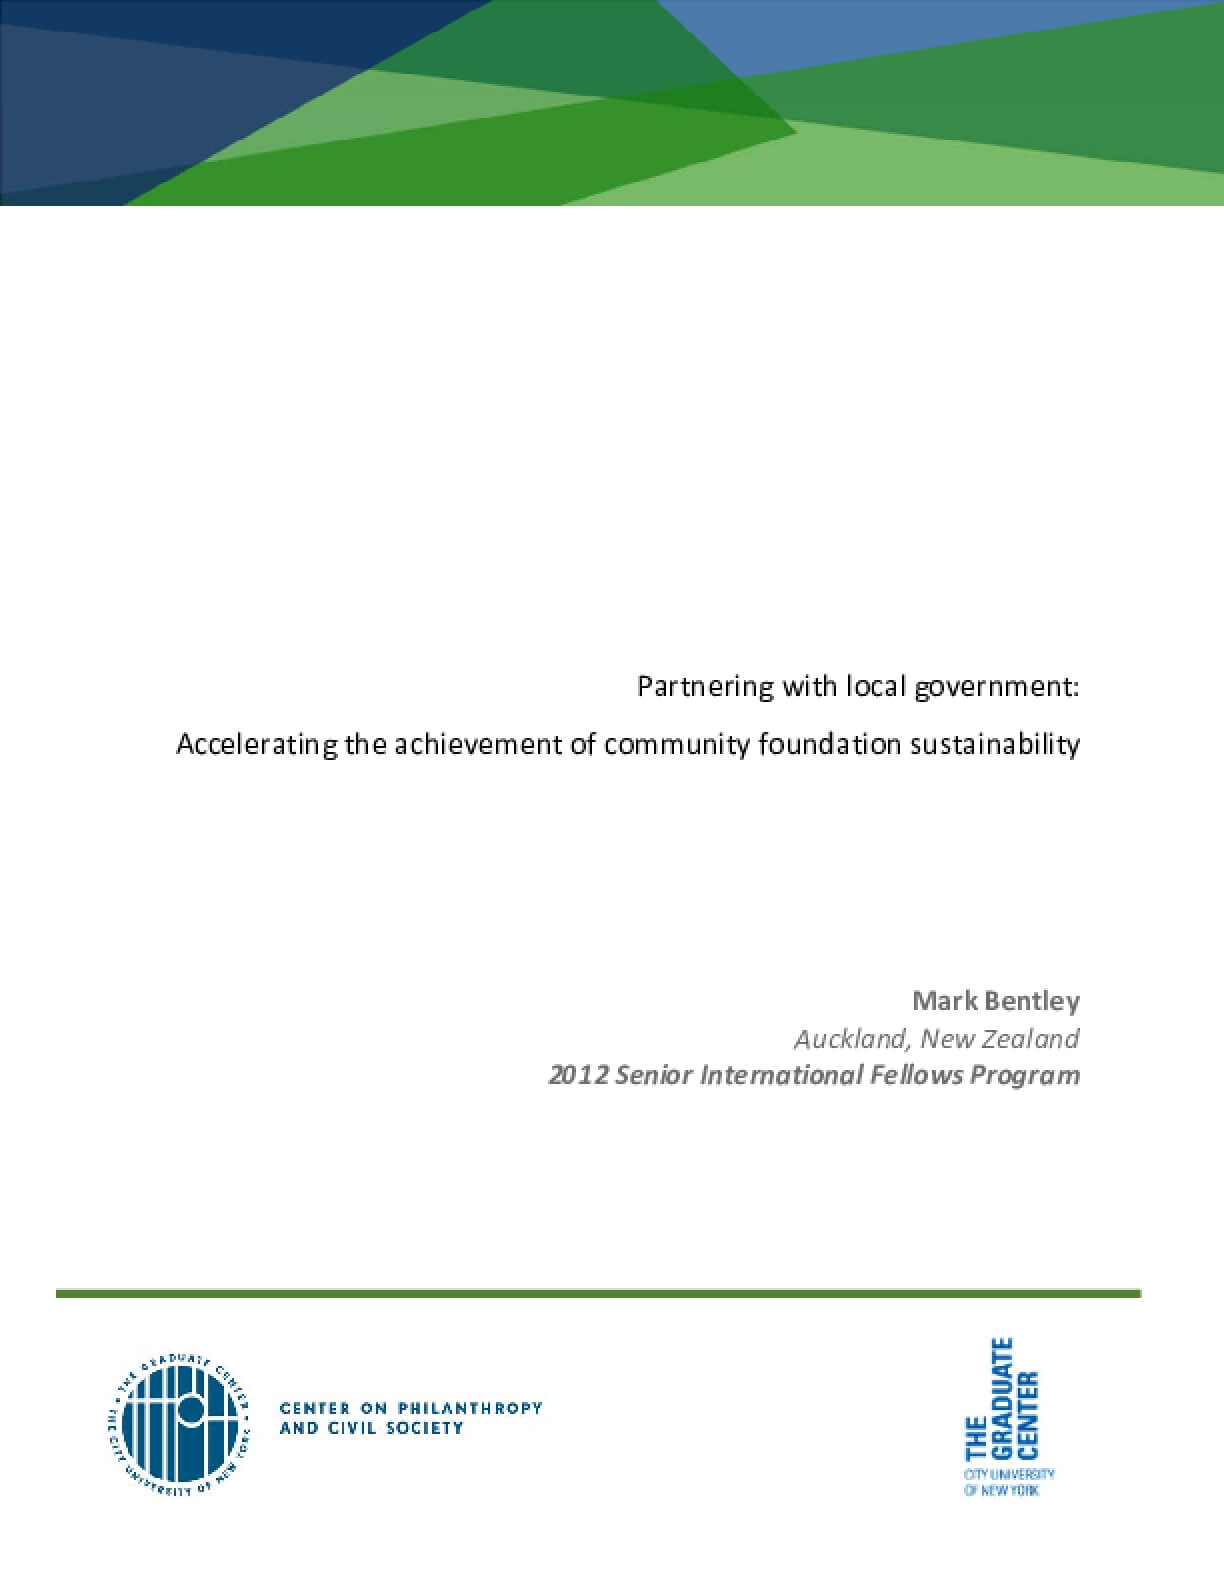 Partnering with local government: Accelerating the achievement of community foundation sustainability